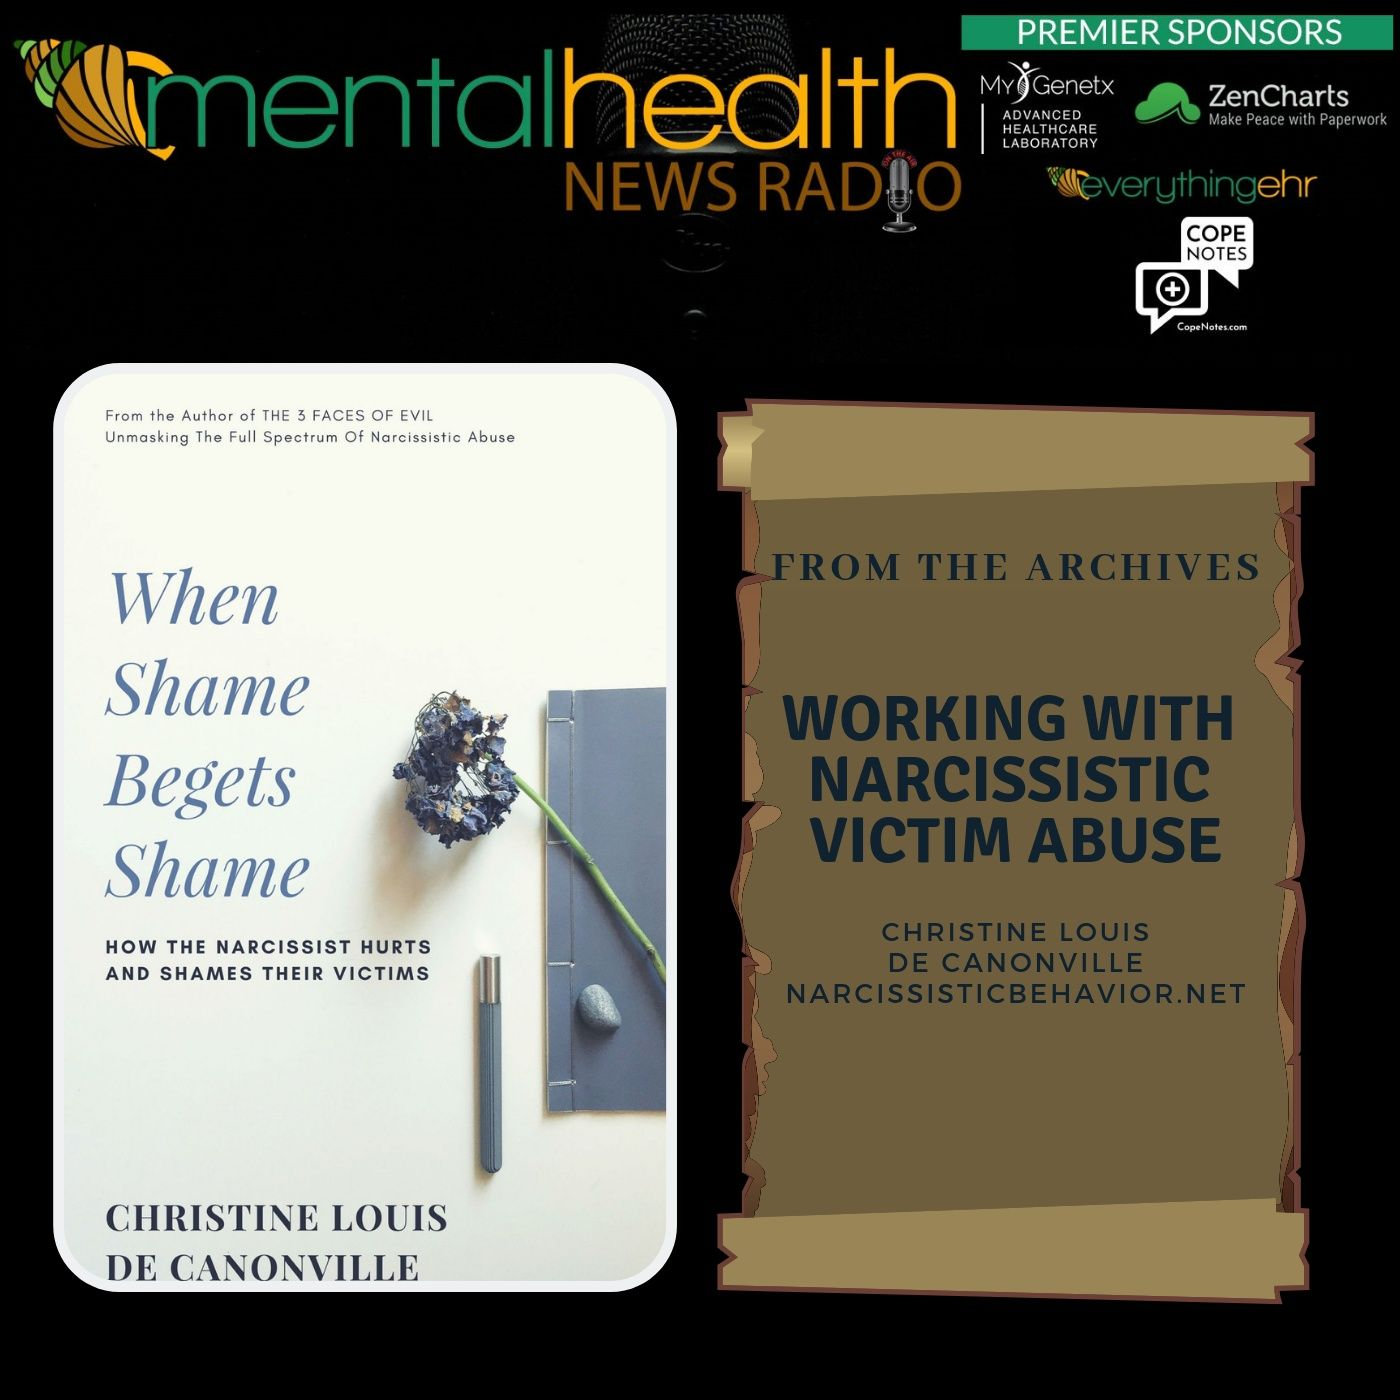 Mental Health News Radio - From the Archives: Working with Narcissistic Victim Abuse: Christine Louis de Canonville